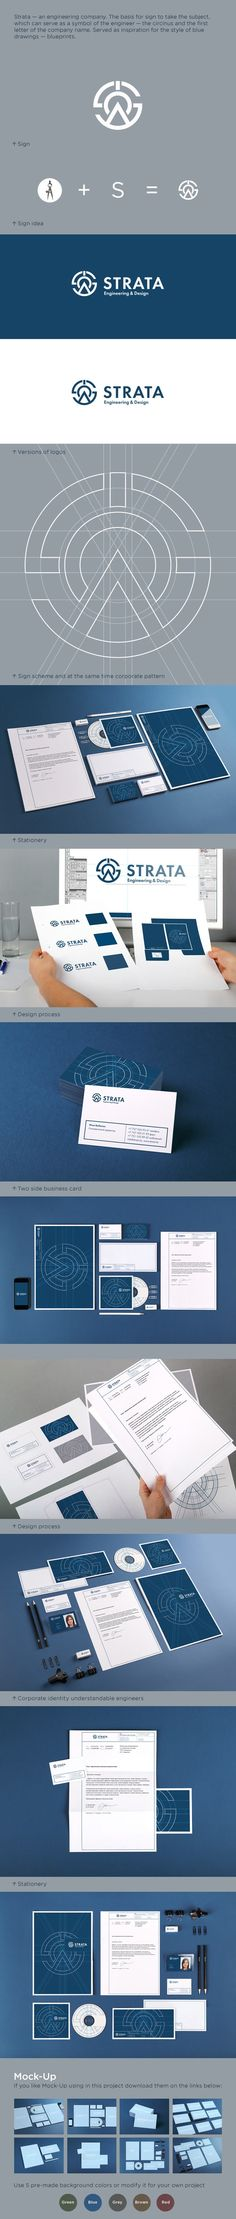 FREE STRATA. LOGO & CORPORATE IDENTITY - Download all for free without any restrictions on http://getfreeresources.com Enjoy everyone!